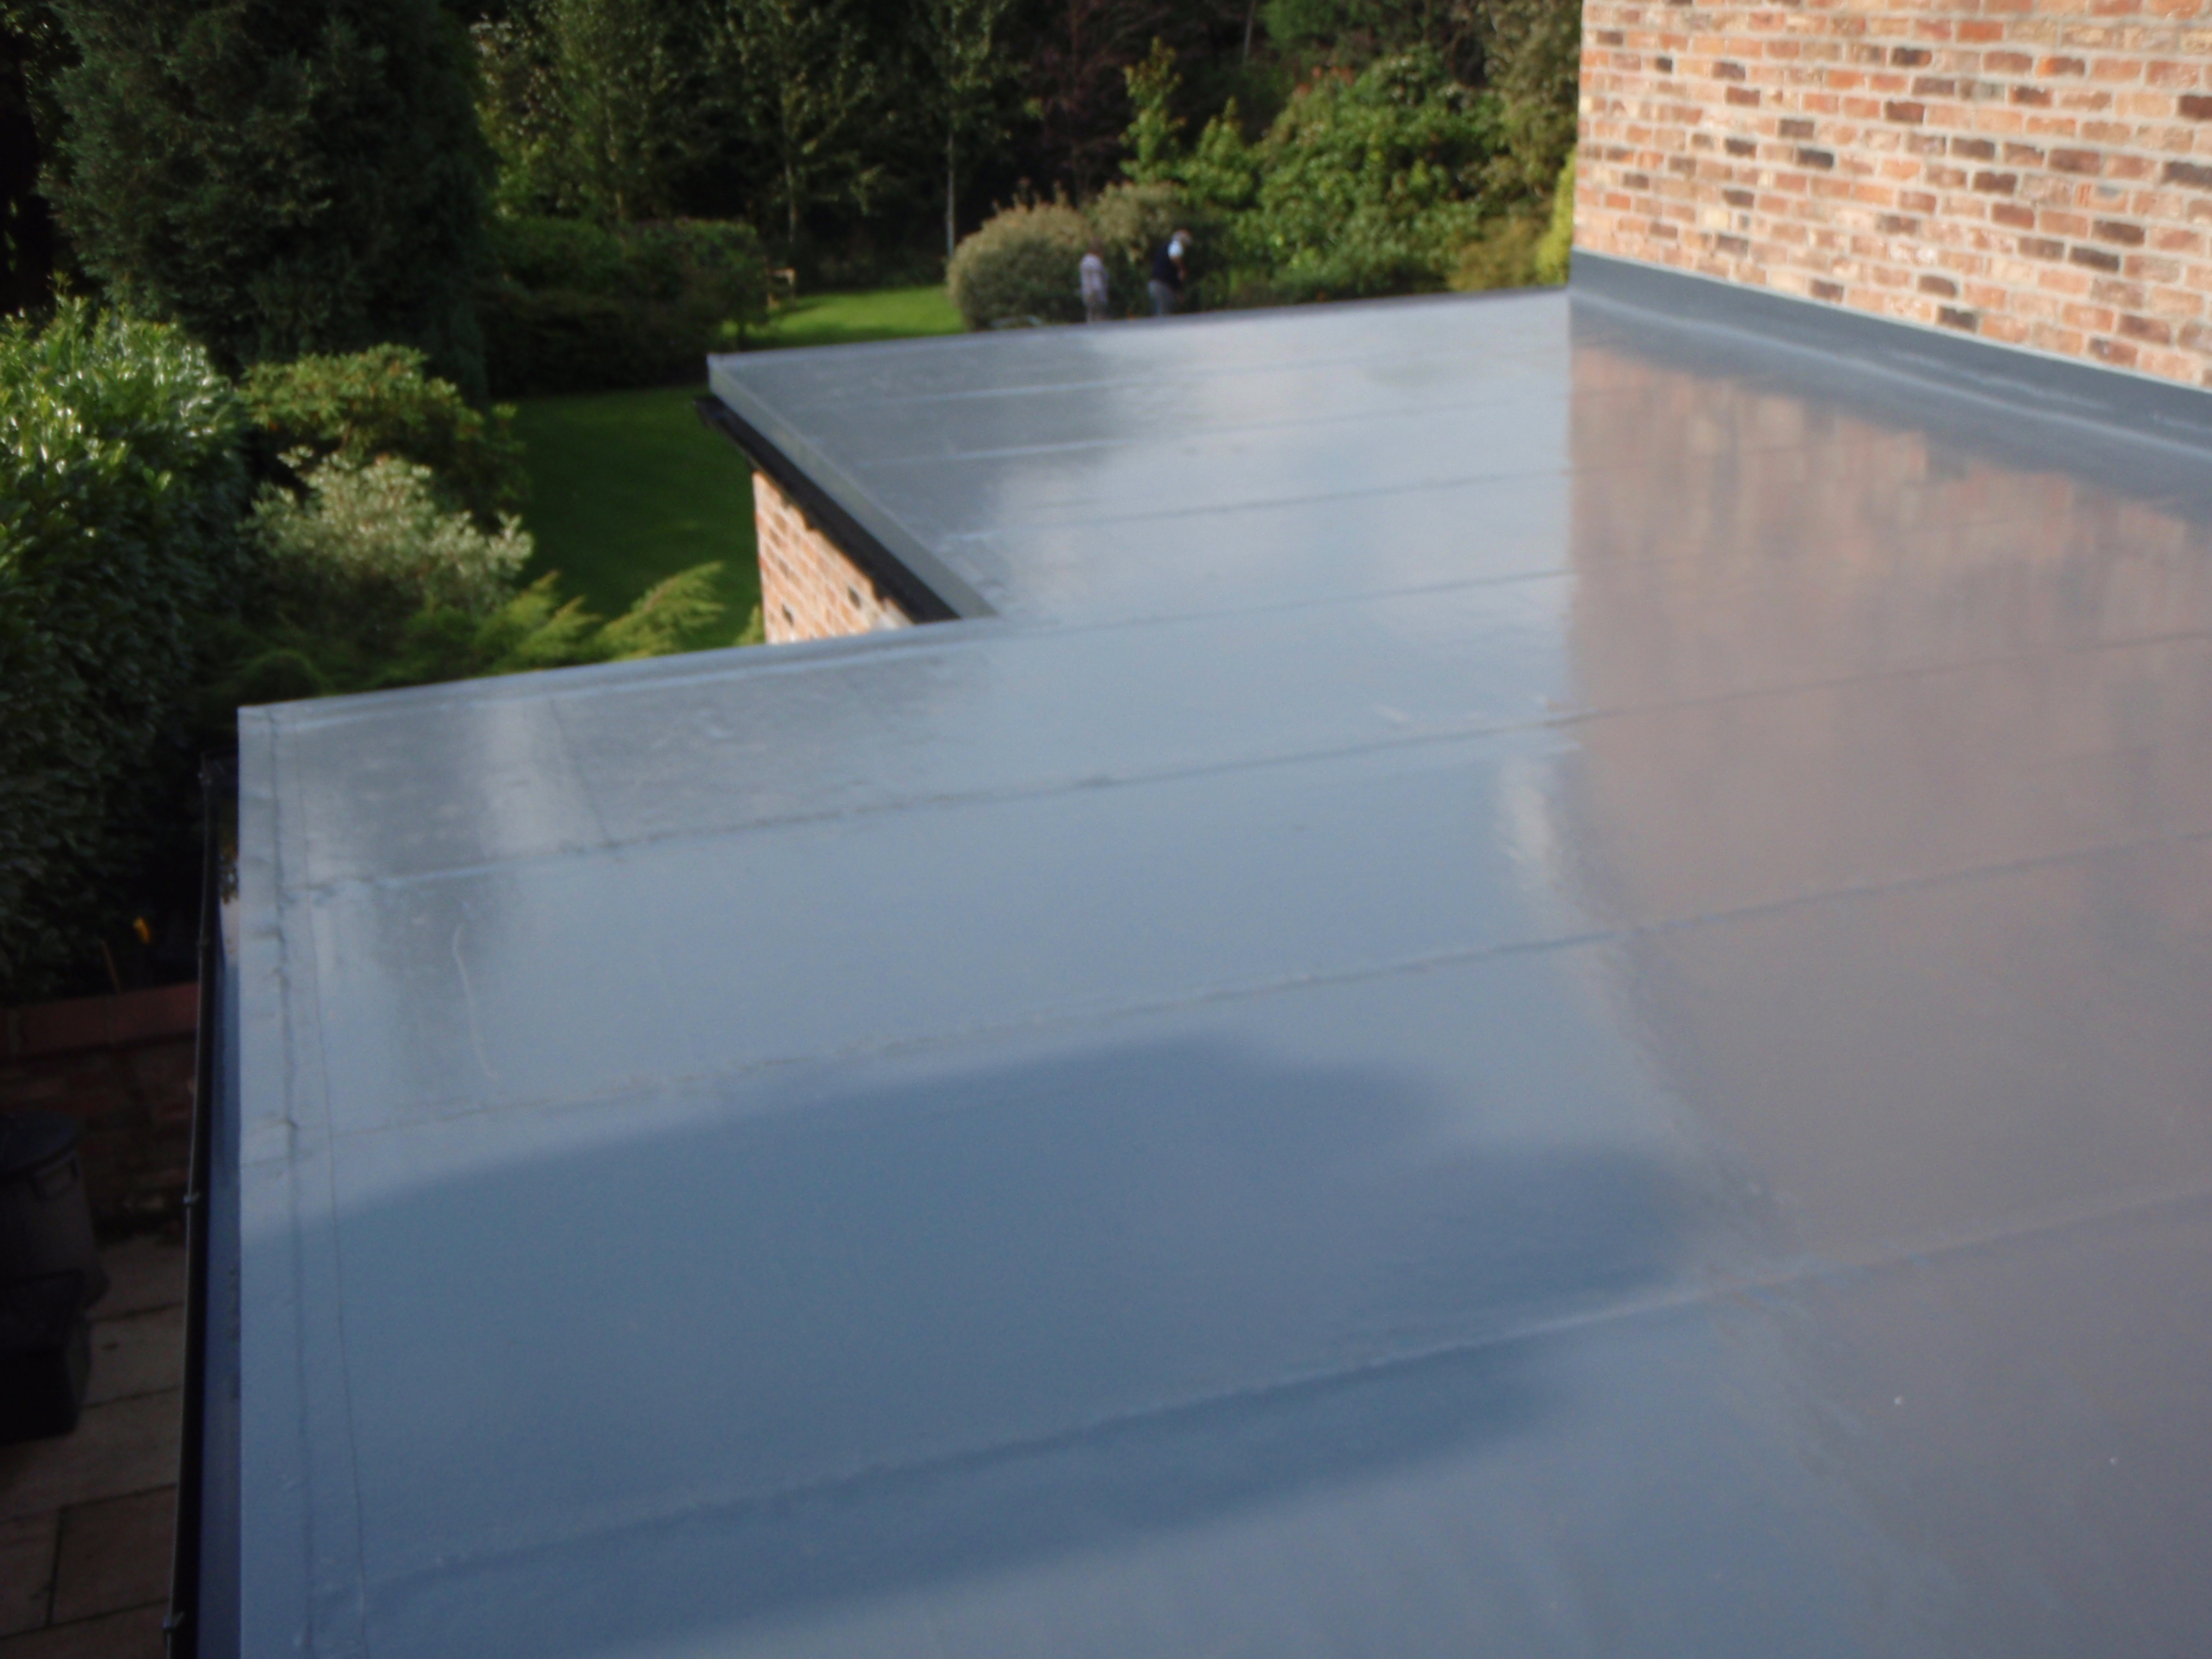 Delightful Polymer Roofing #5: After - Evalon Polymer Flat Roof